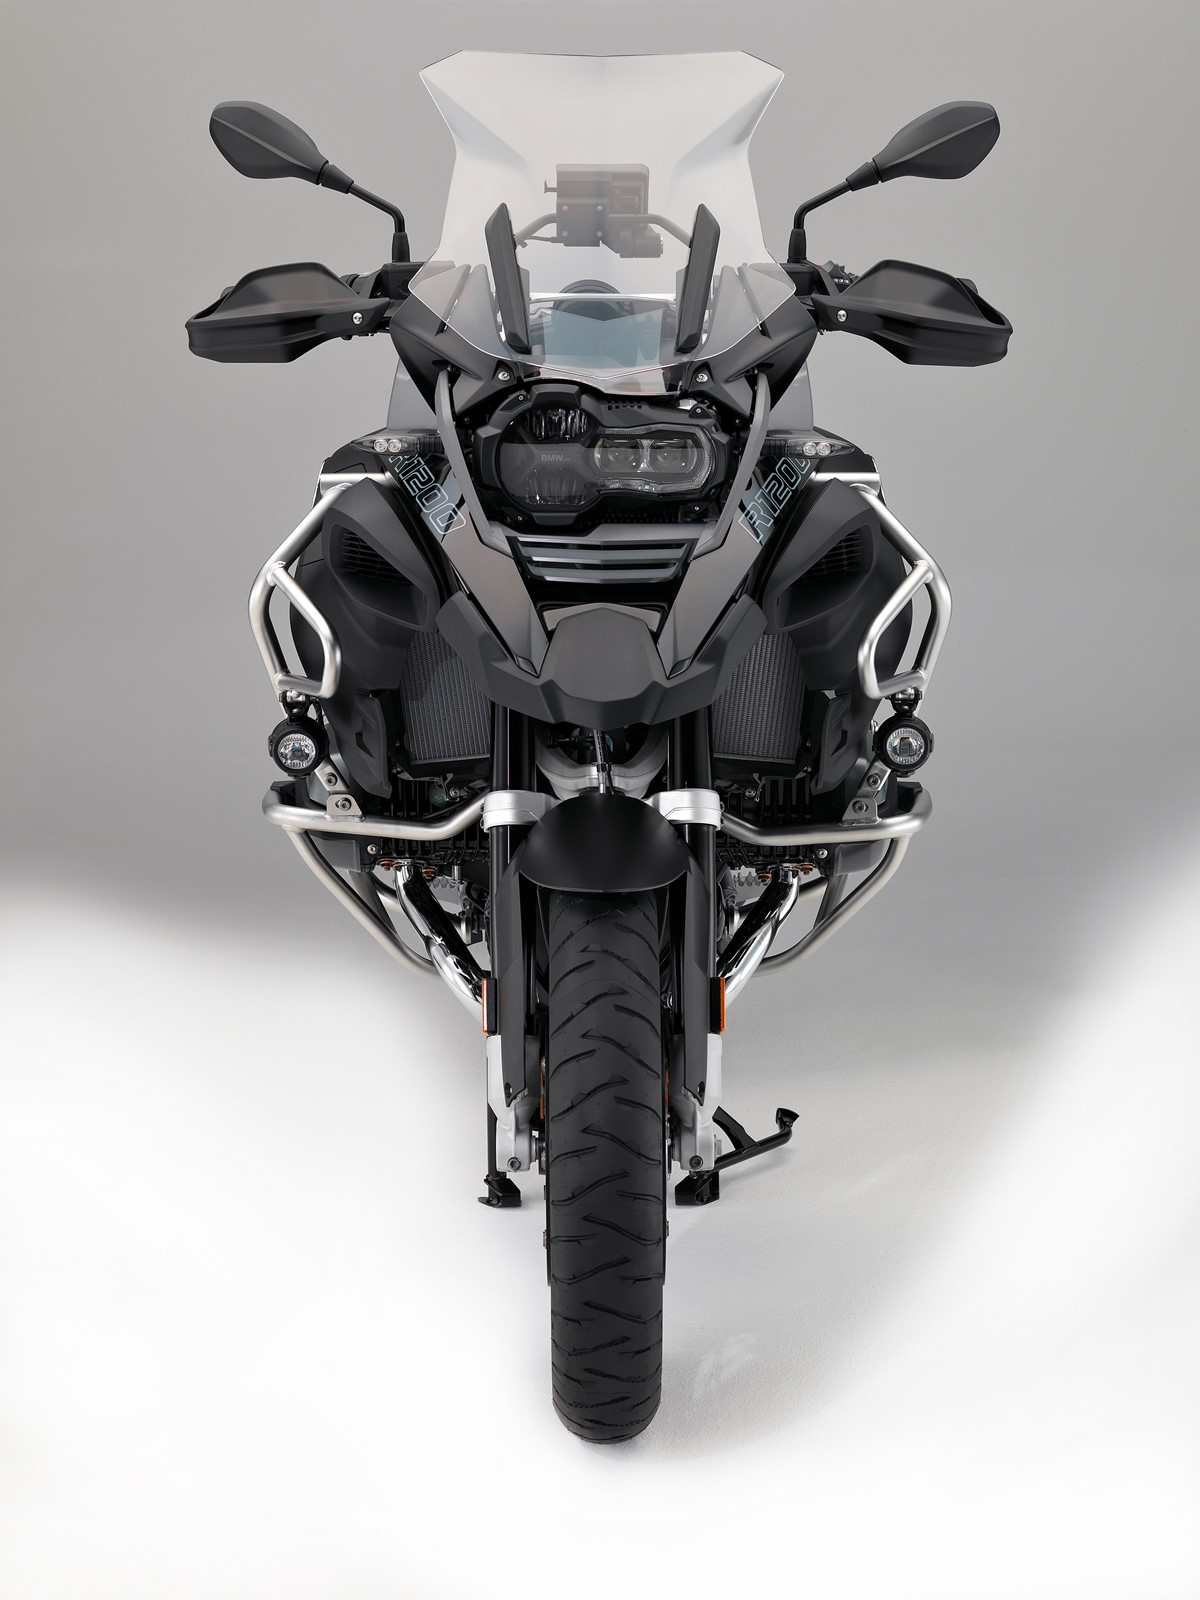 2017 BMW R1200 GS front